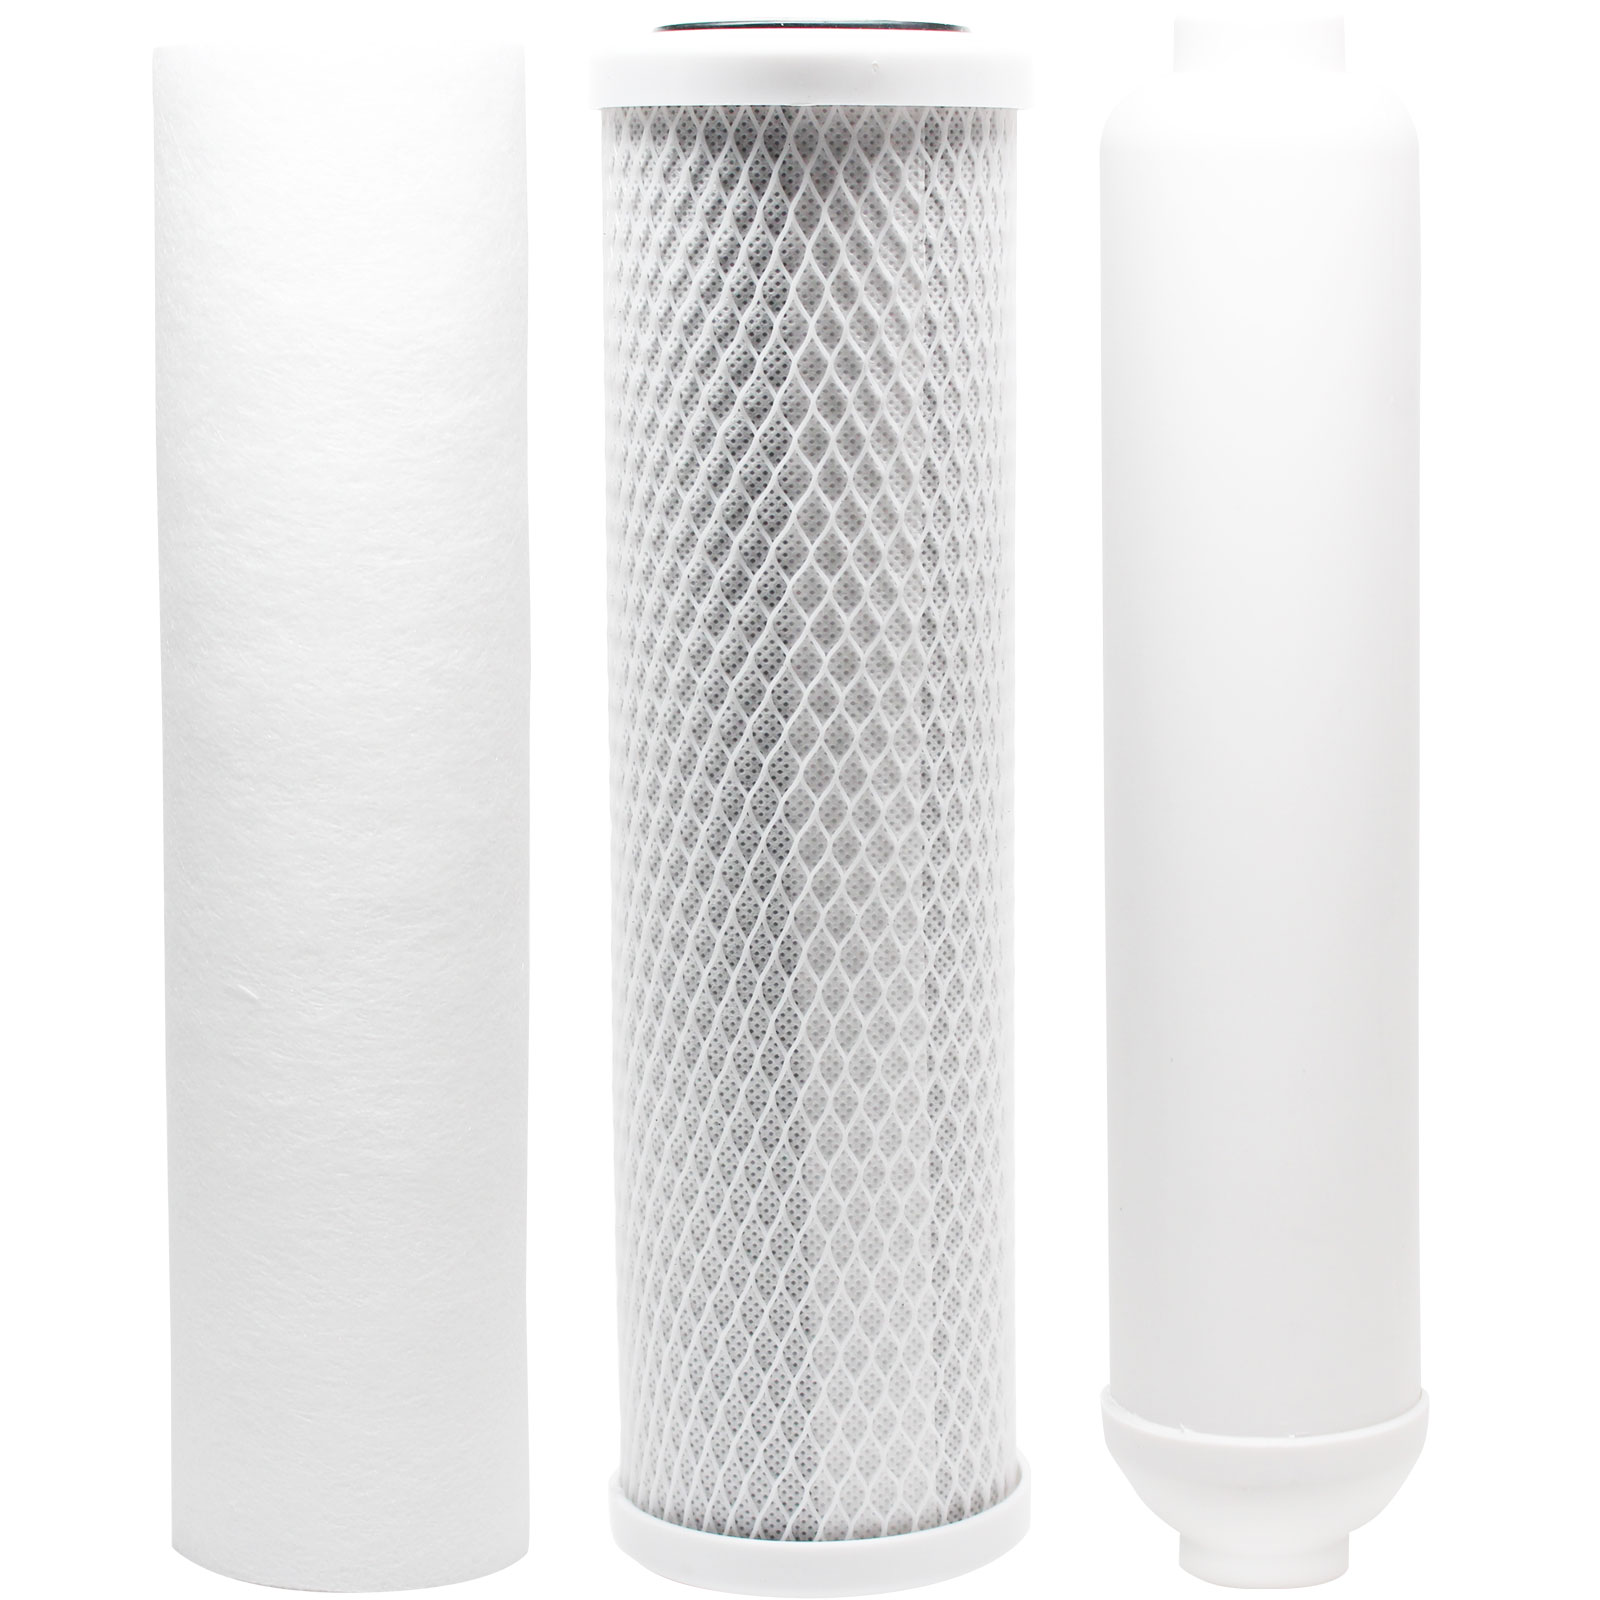 Replacement Filter Kit for Rainsoft 9596 RO System - Includes Carbon Block Filter, PP Sediment Filter & Inline Filter Cartridge - Denali Pure Brand